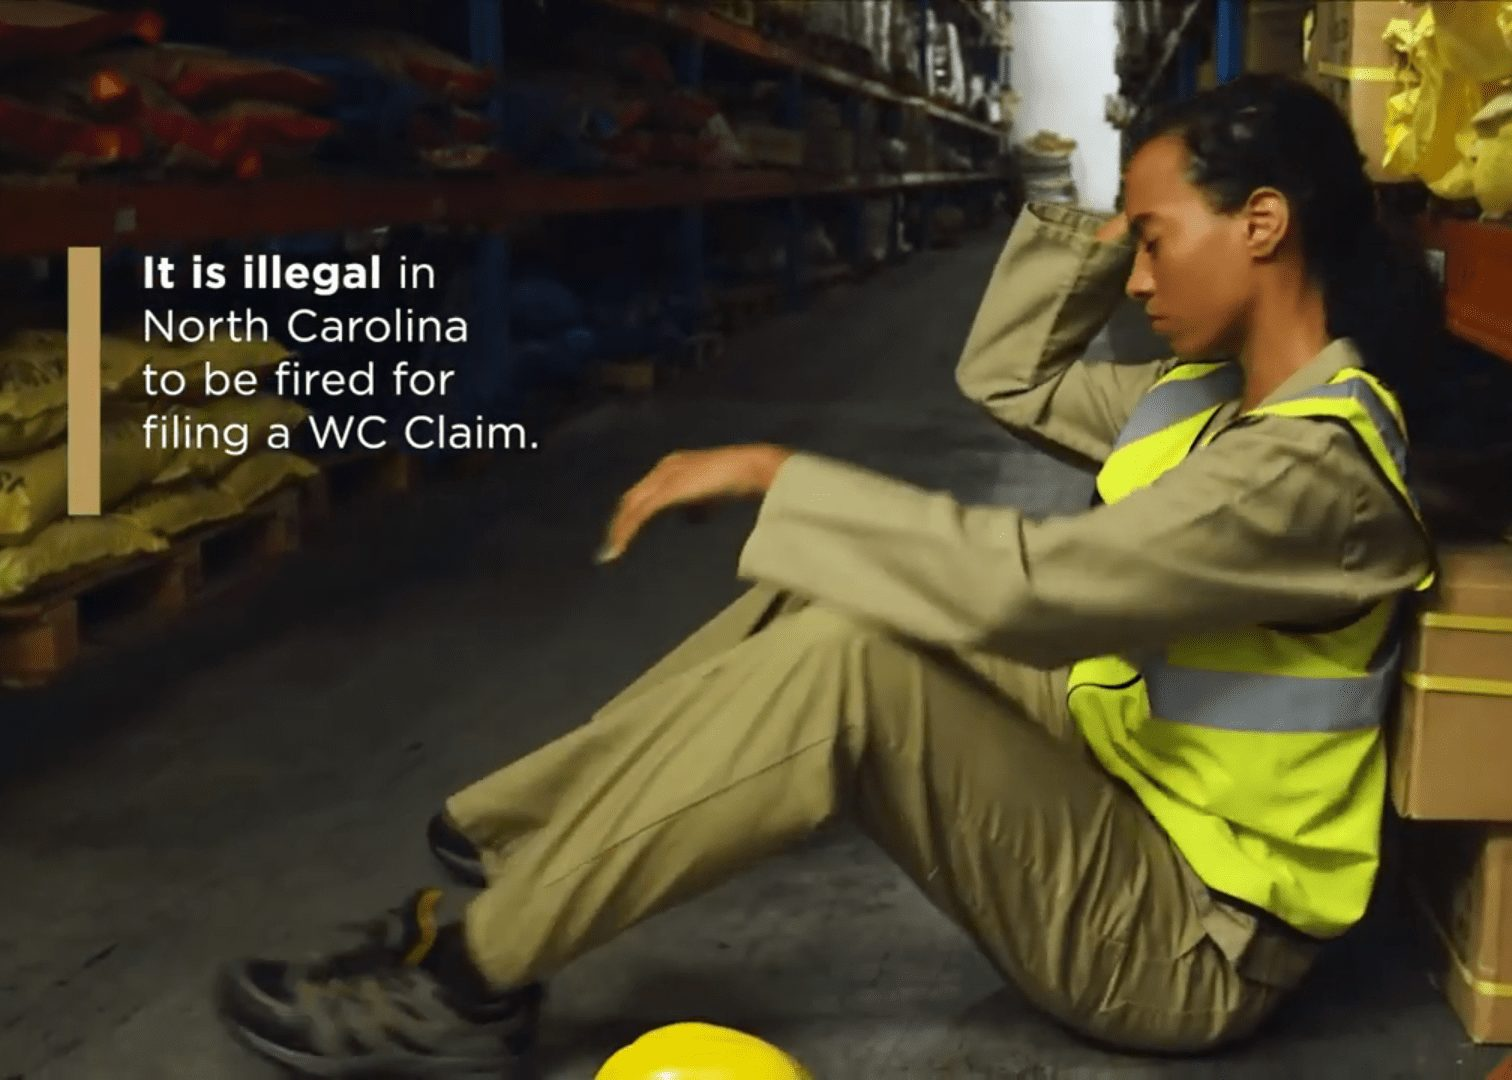 It is illegal to be fire after filing a workers compensation claim.